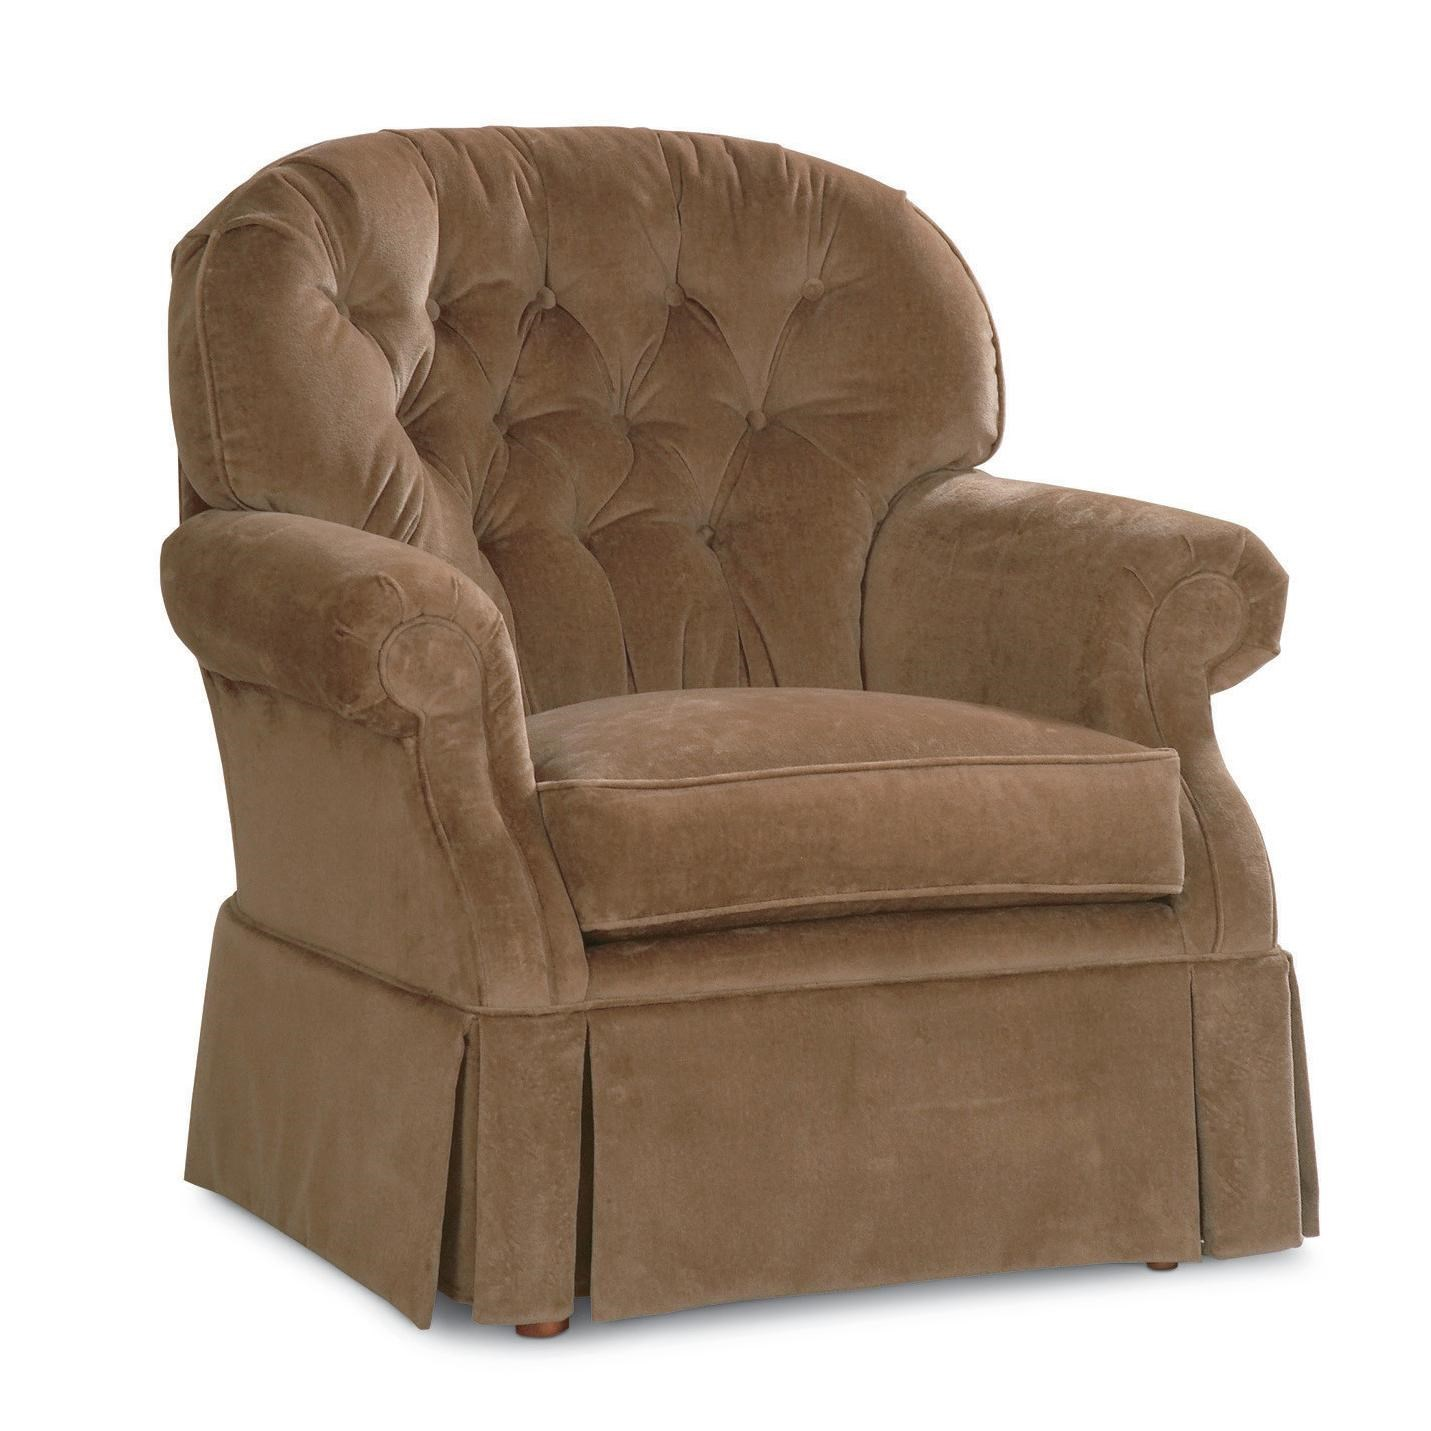 Lazy Boy Swivel Chair La Z Boy Hampden Traditional Swivel Rocker With Tufted Back And